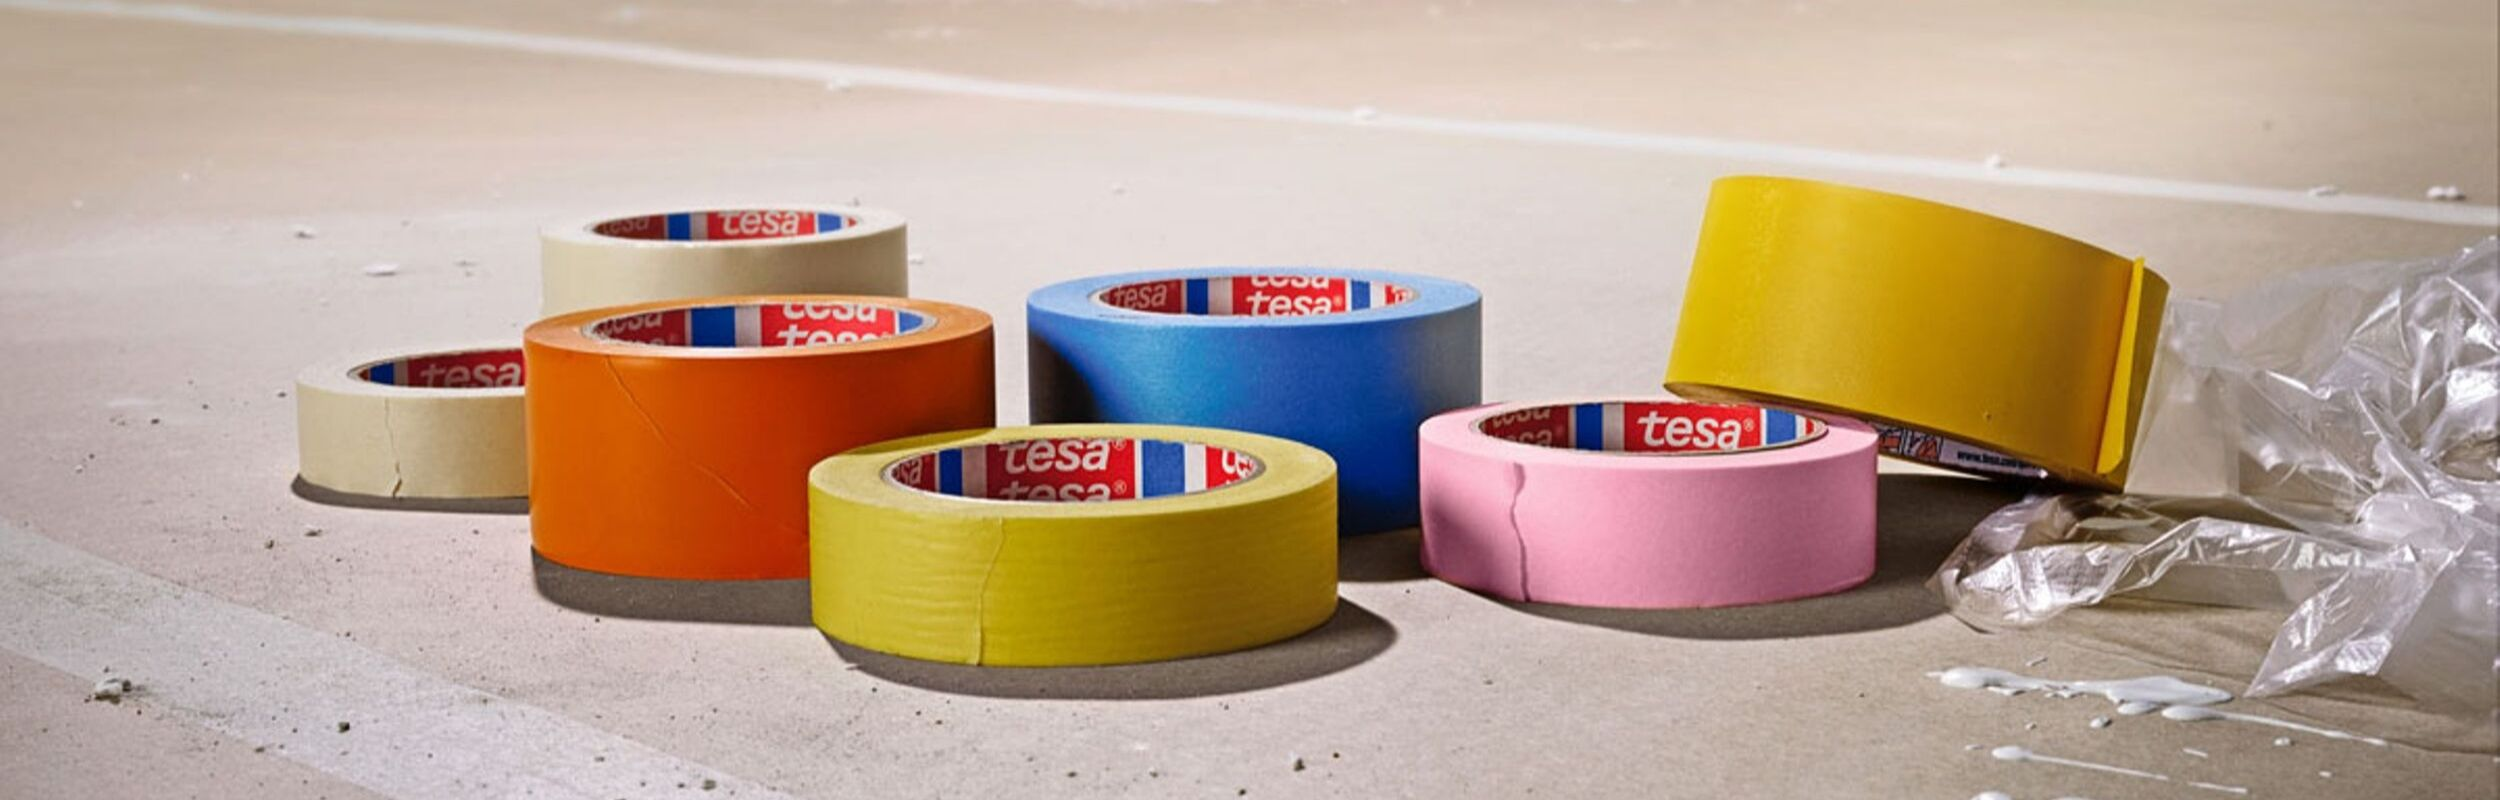 Univar Sticks With Quality With Tesa® Masking Tape Additions.